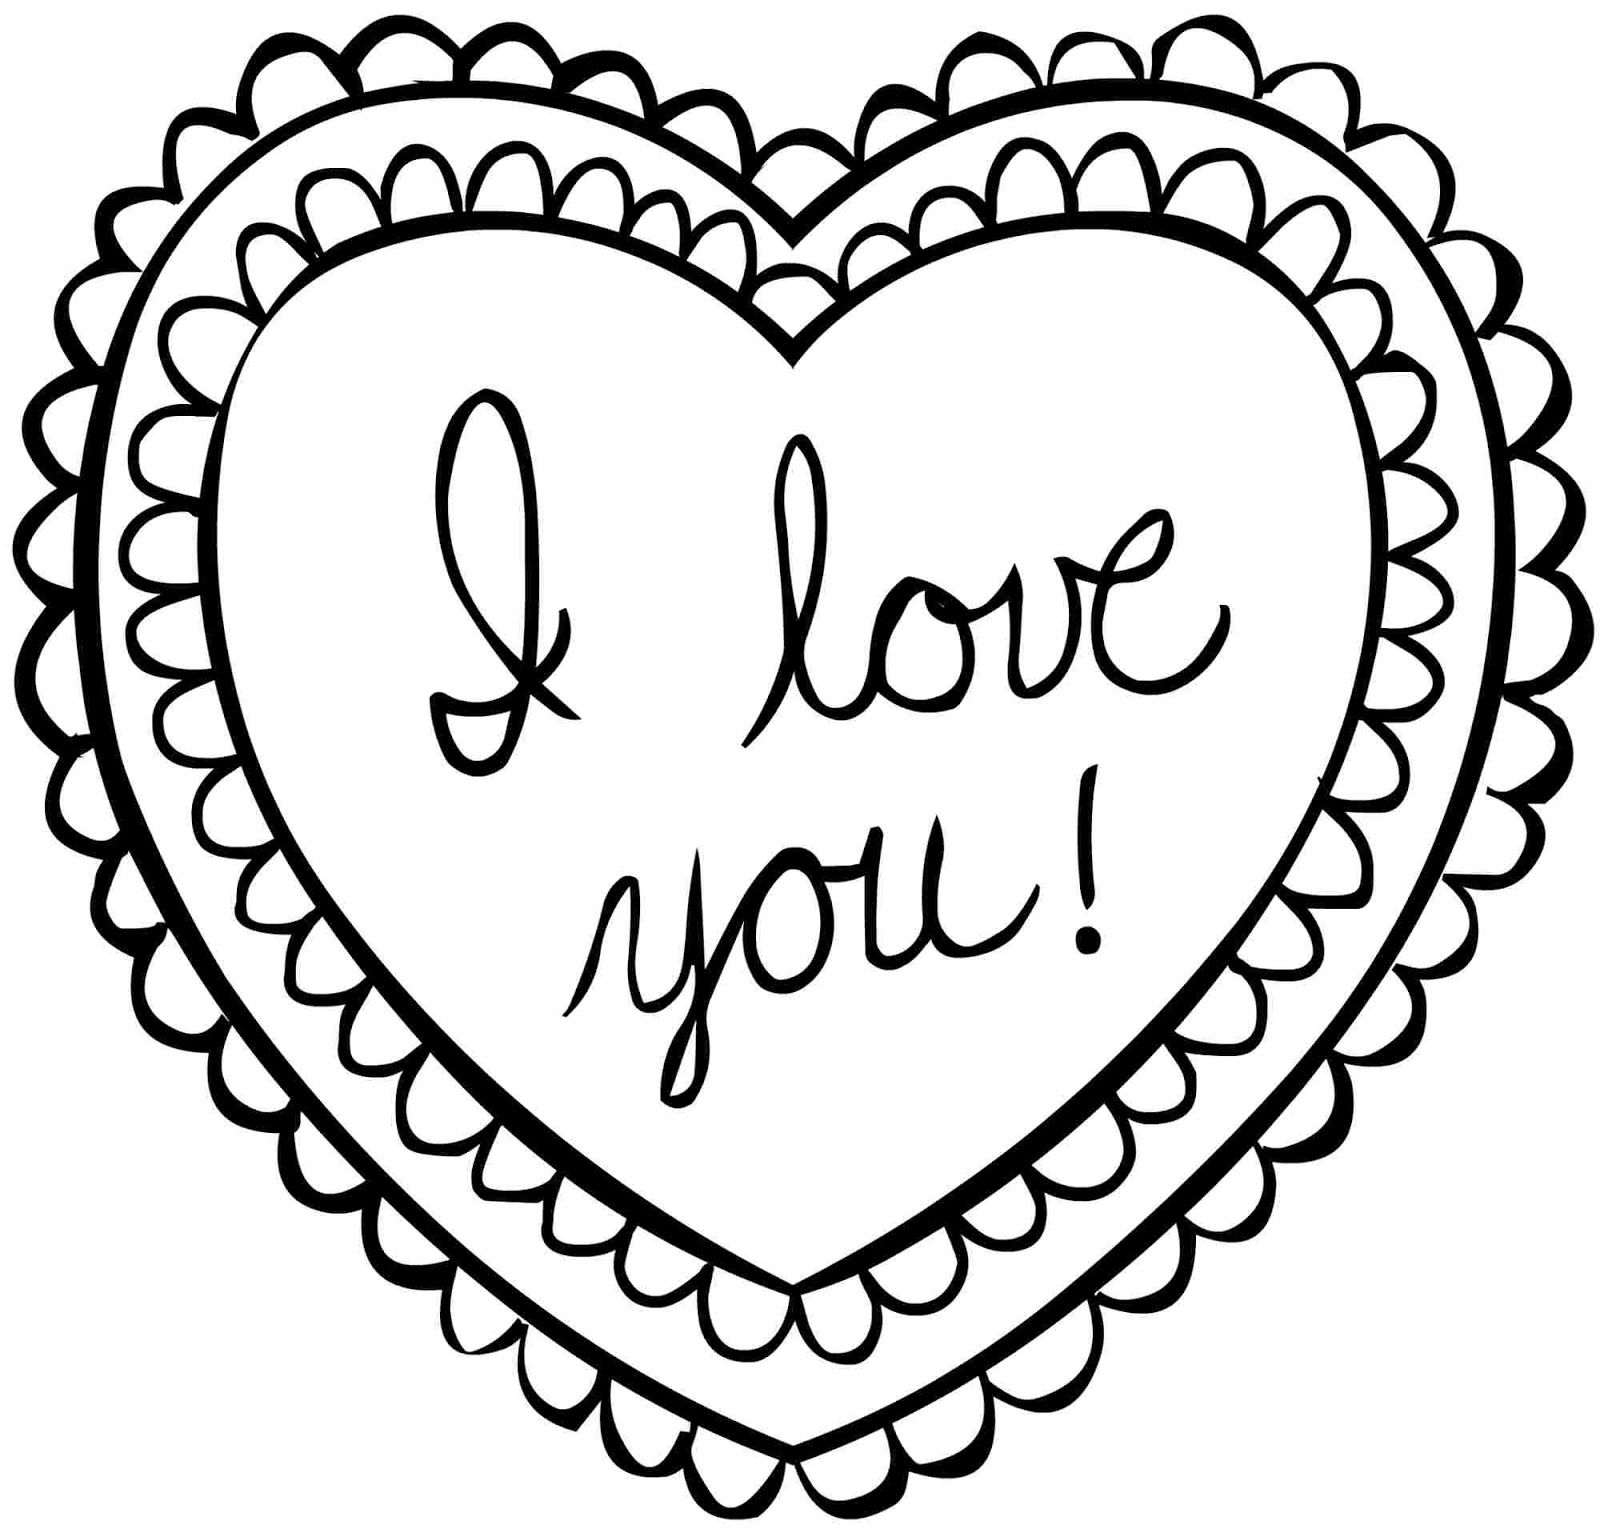 coloring-pages-valentine-s-day.jpg (1600×1537) | Pinterest